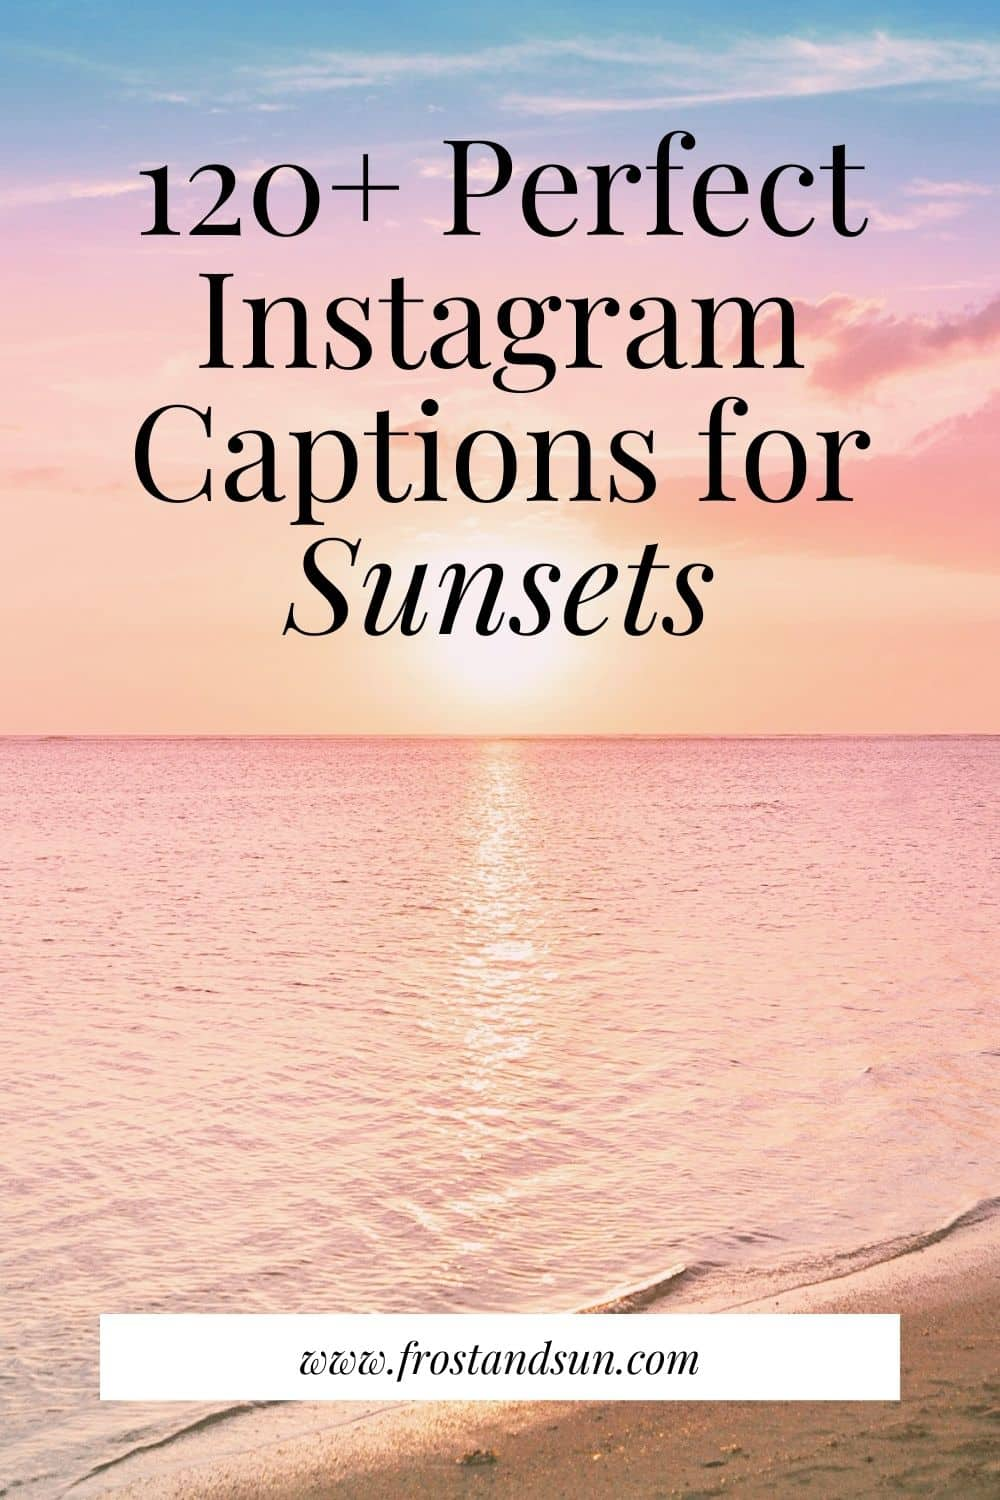 120+ Sunset Captions & Quotes for Instagram